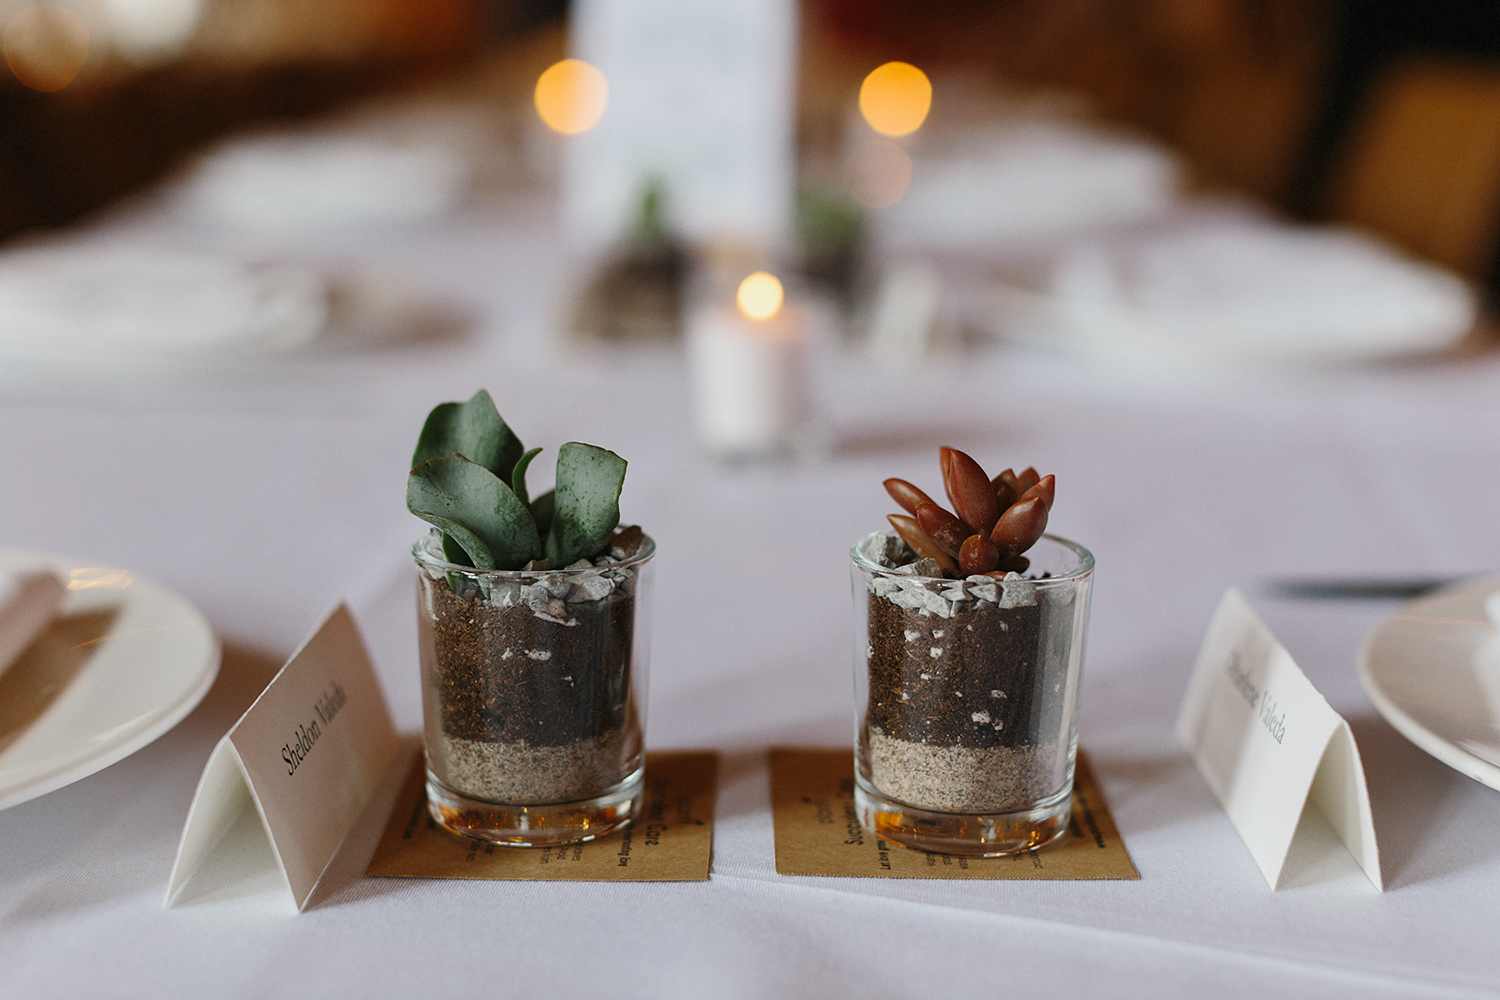 Best-Wedding-Photographers-in-Toronto-Downtown-Urban-Gladstone-Hotel-Venue-Inspiration-Top-Venues-in-Toronto-boutique-hotel-candid-documentary-brunch-wedding-reception-succulents-favours.jpg